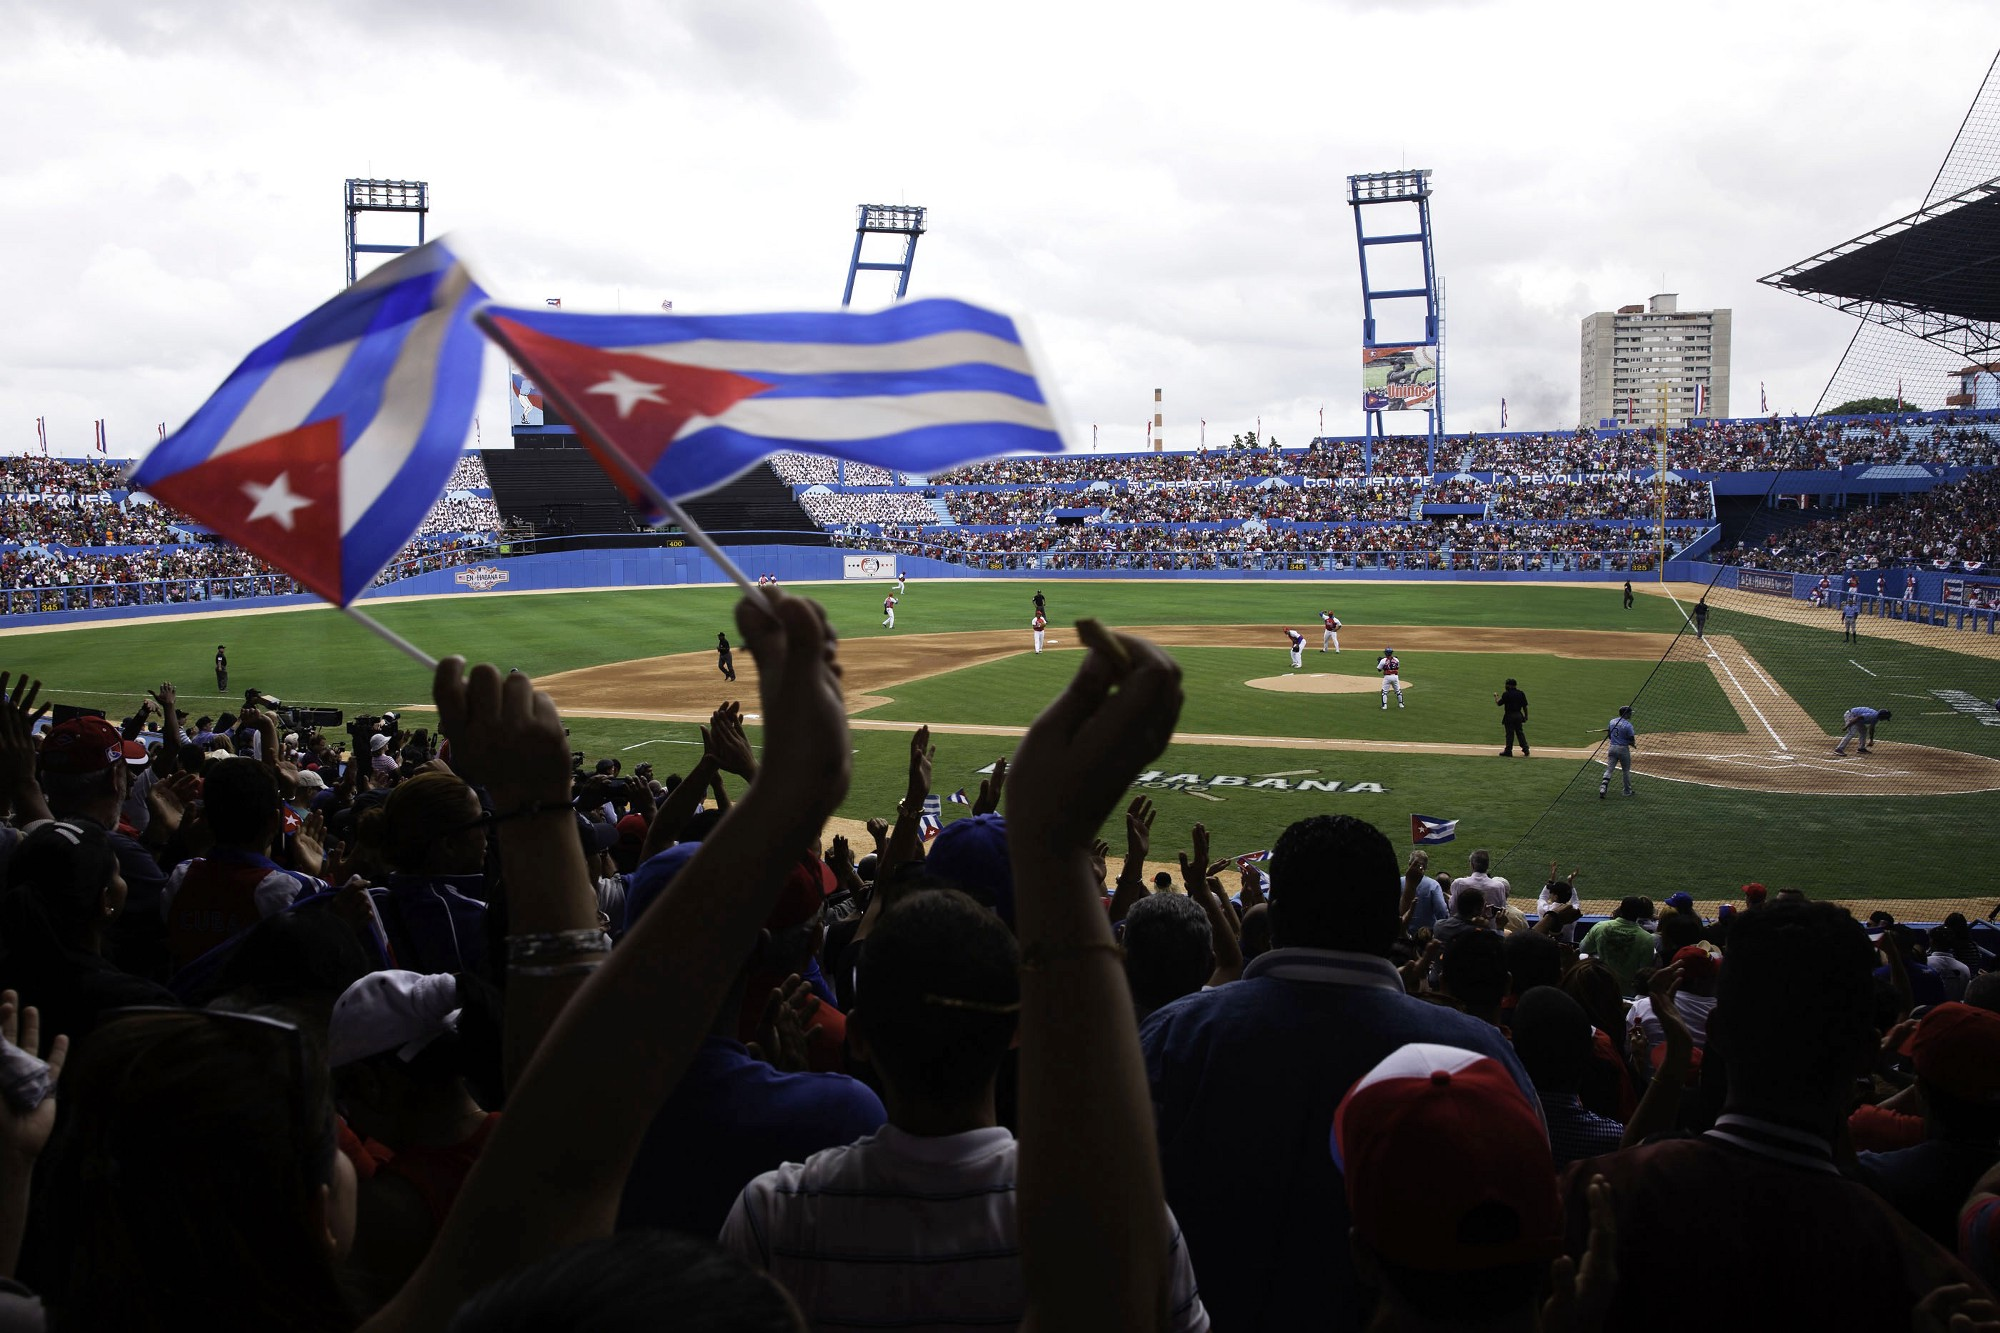 Fans react during an exhibition baseball game between the Tampa Bay Rays and the Cuban National Team at the Estadio Latinoamericano in Havana, Cuba, March 22, 2016. (Official White House Photo by Chuck Kennedy)